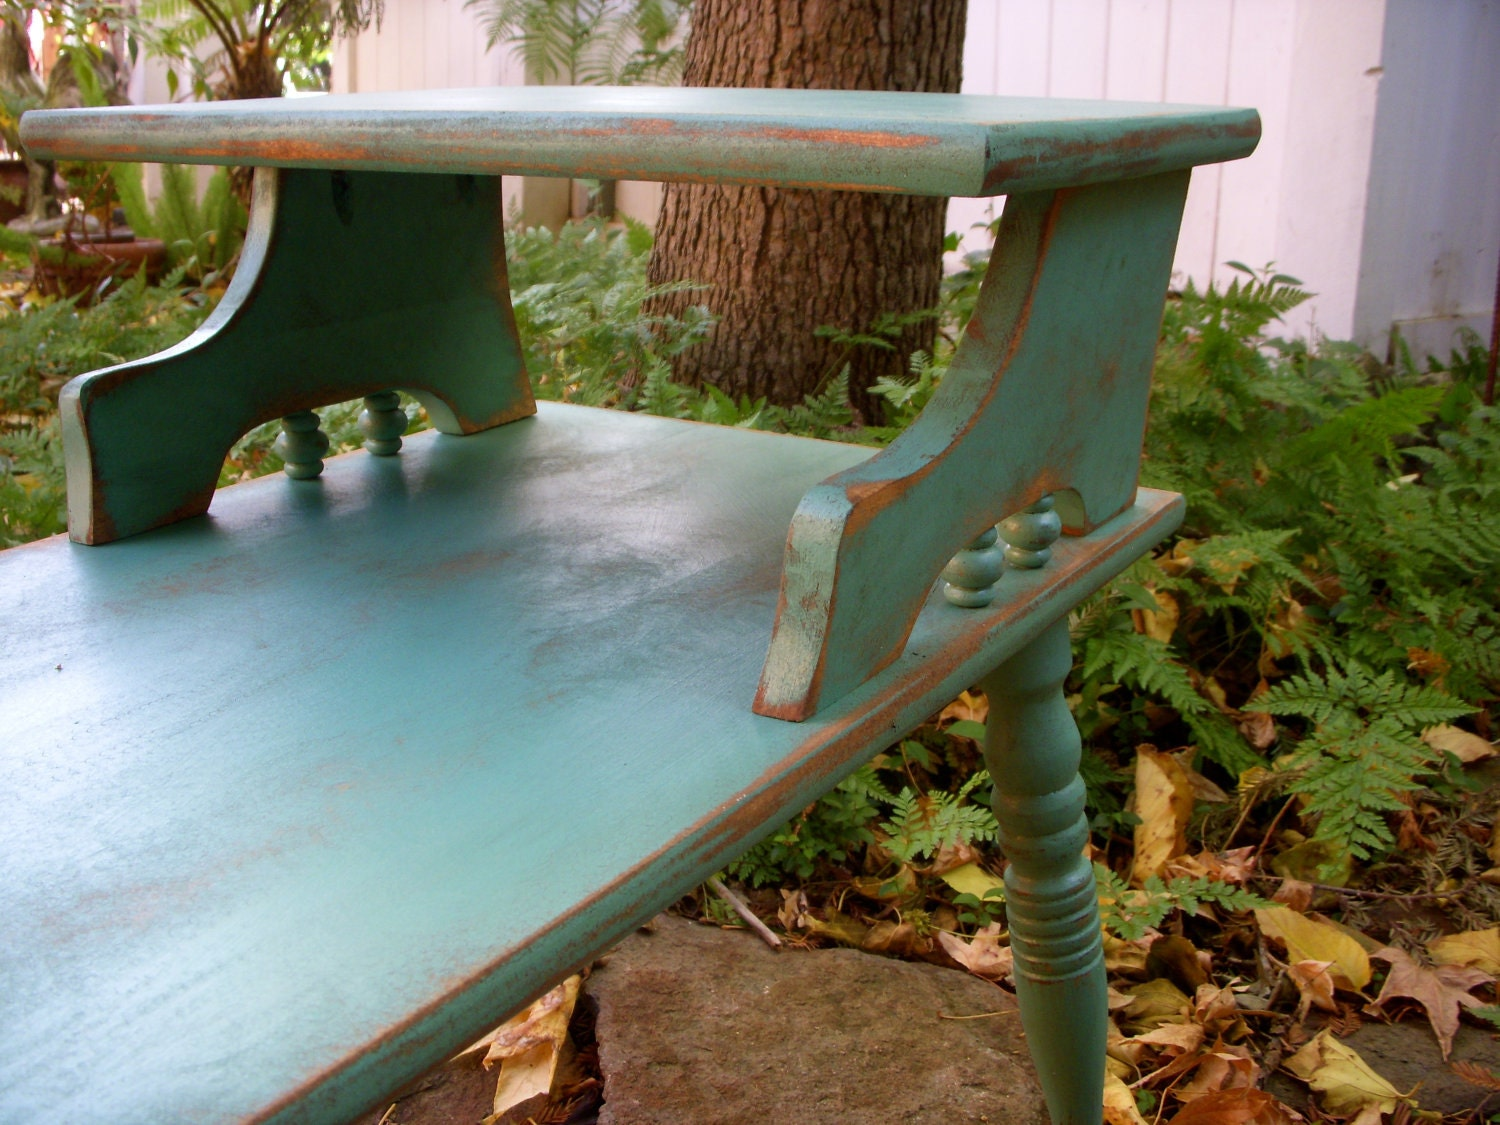 Popular items for upcycled furniture on Etsy